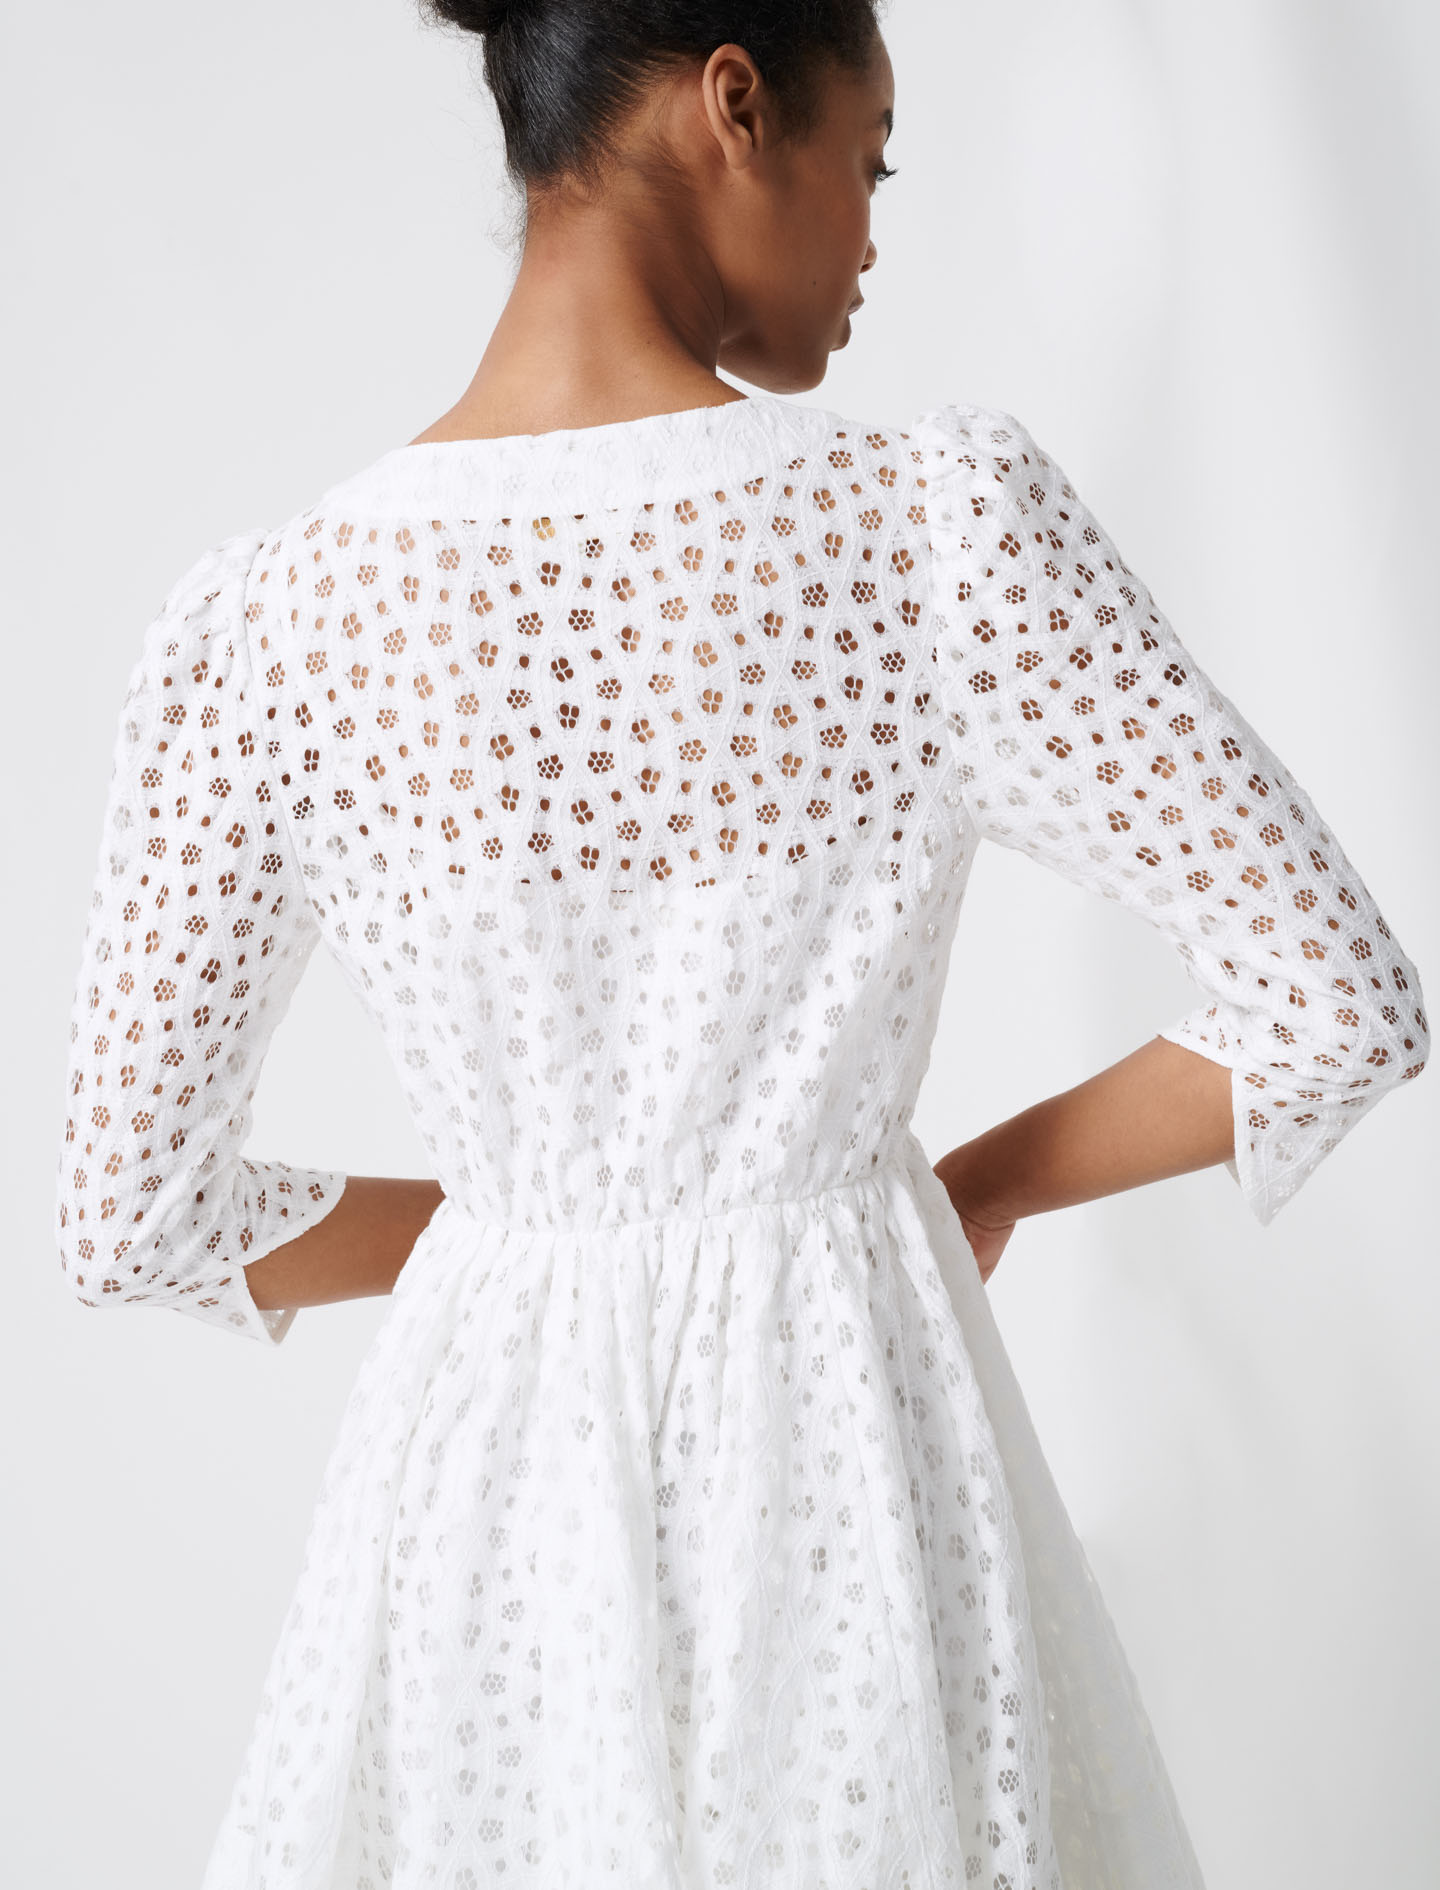 White lace dress - White